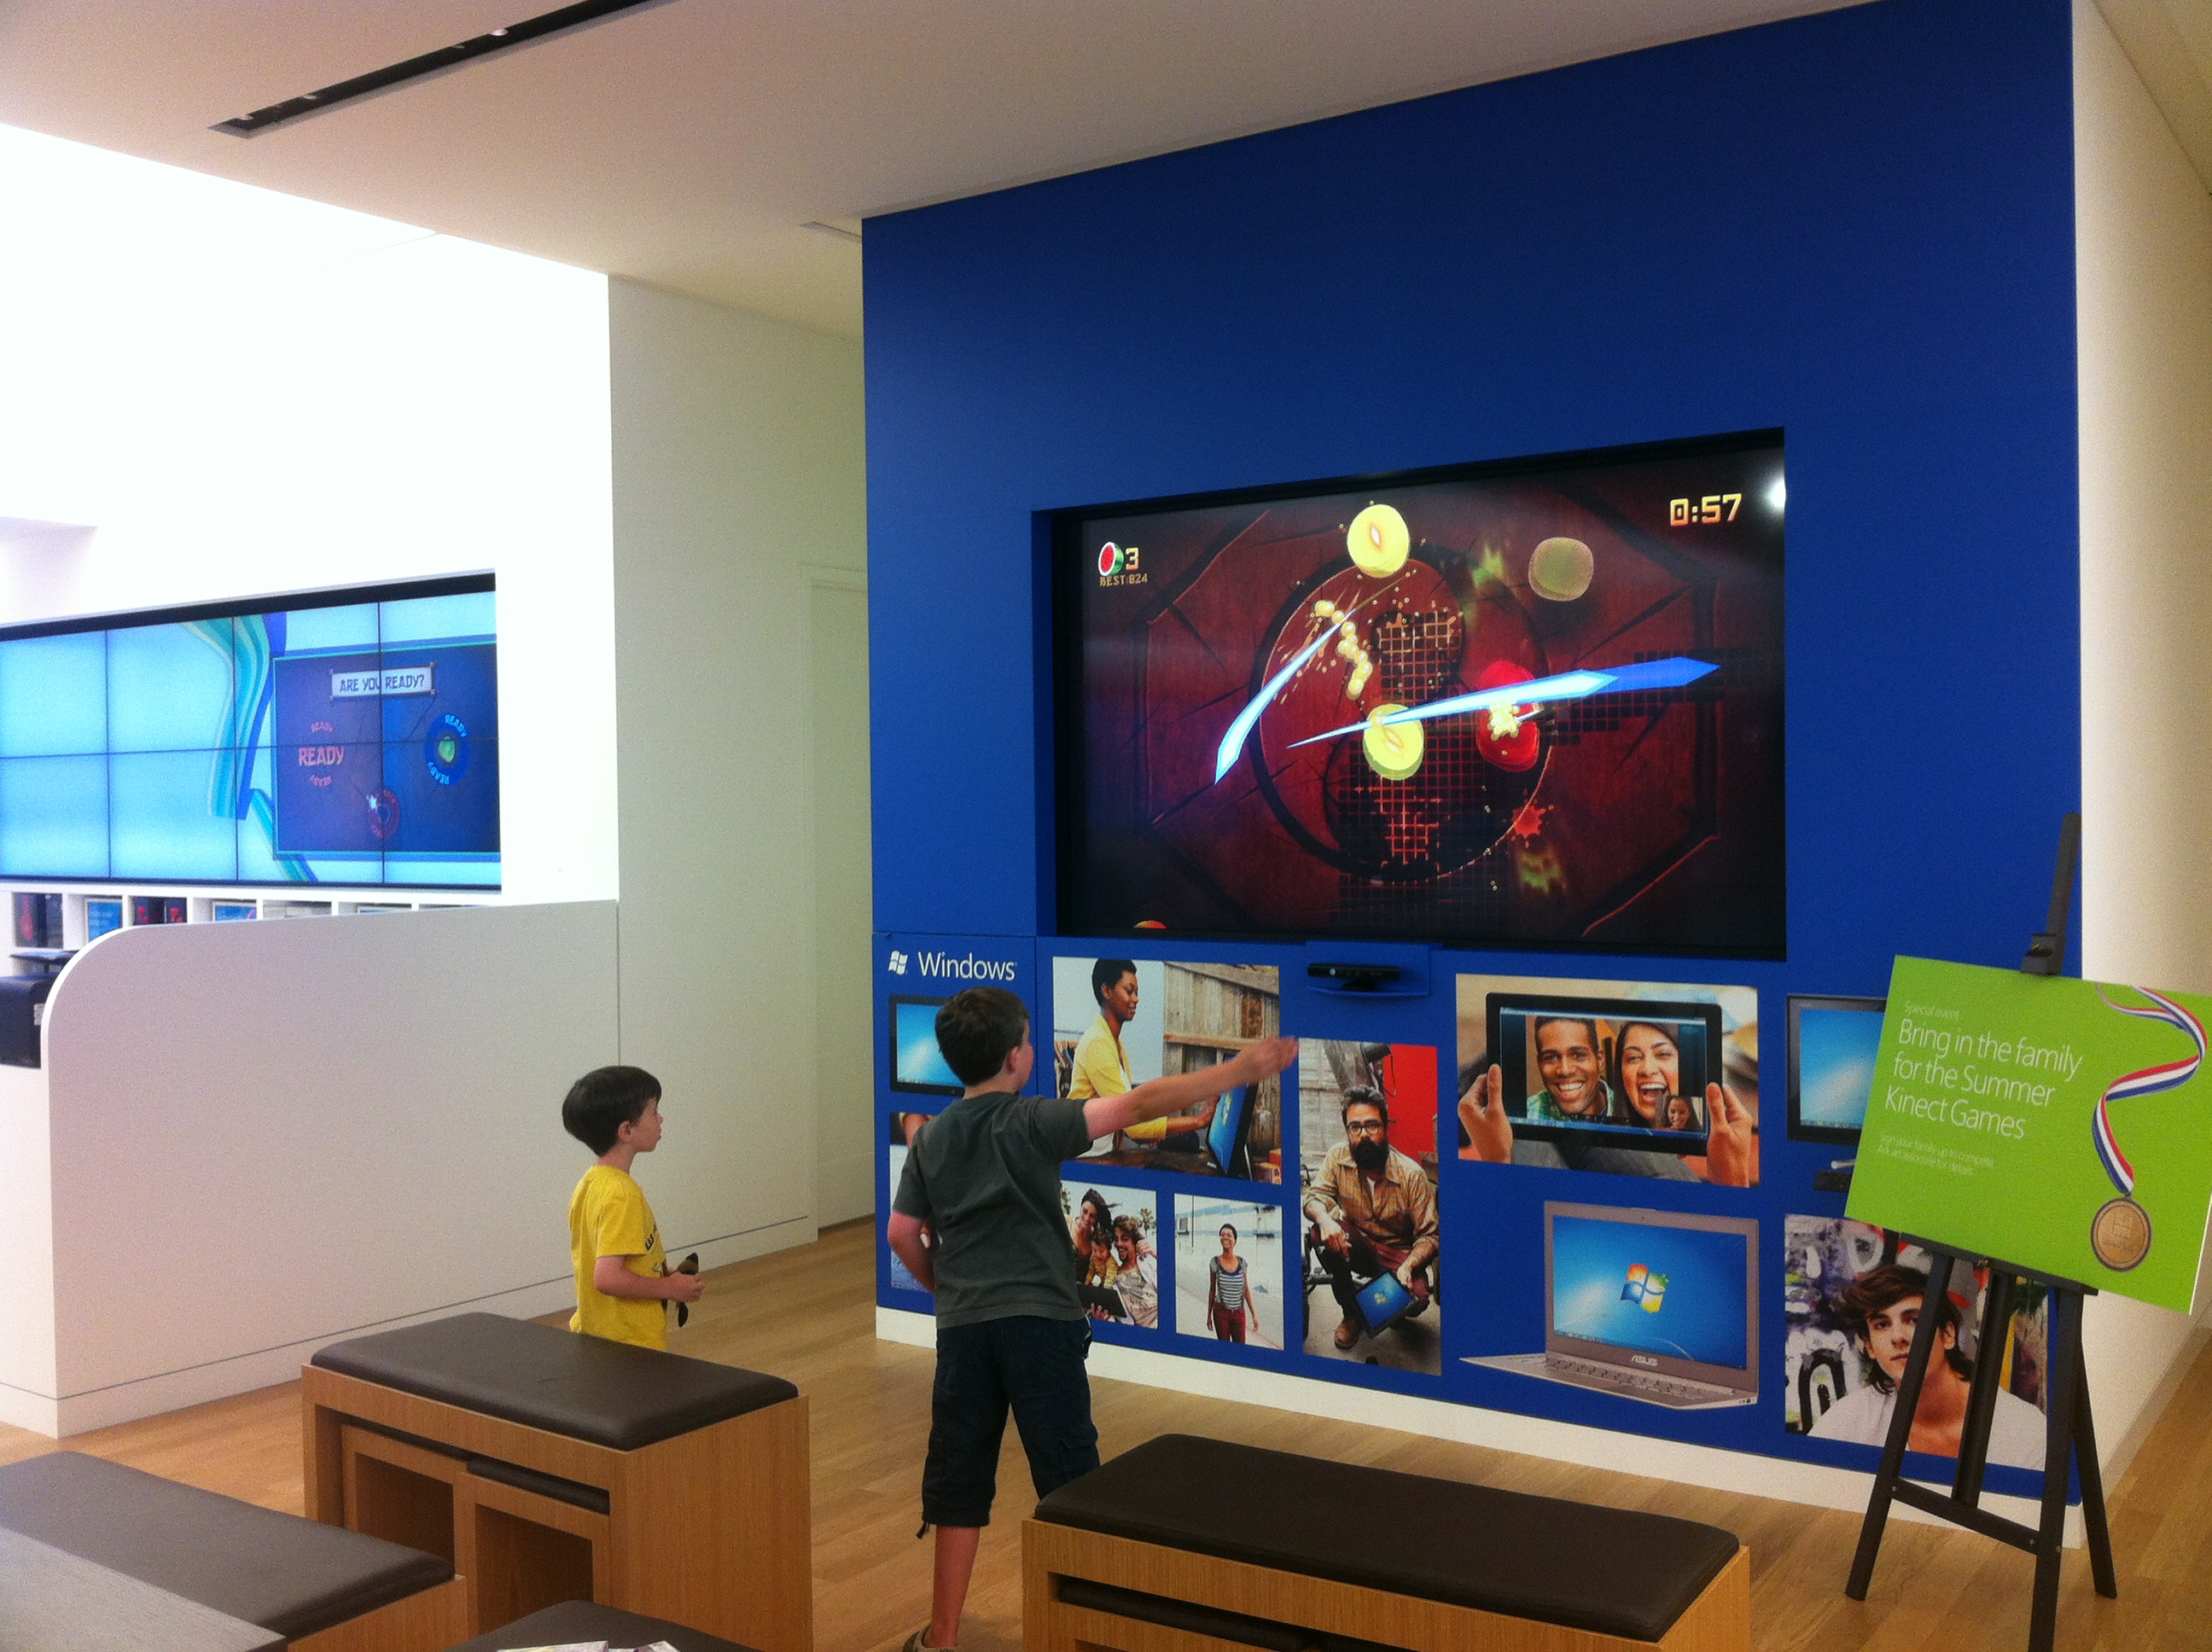 A visit to the Microsoft Store in Danbury CT